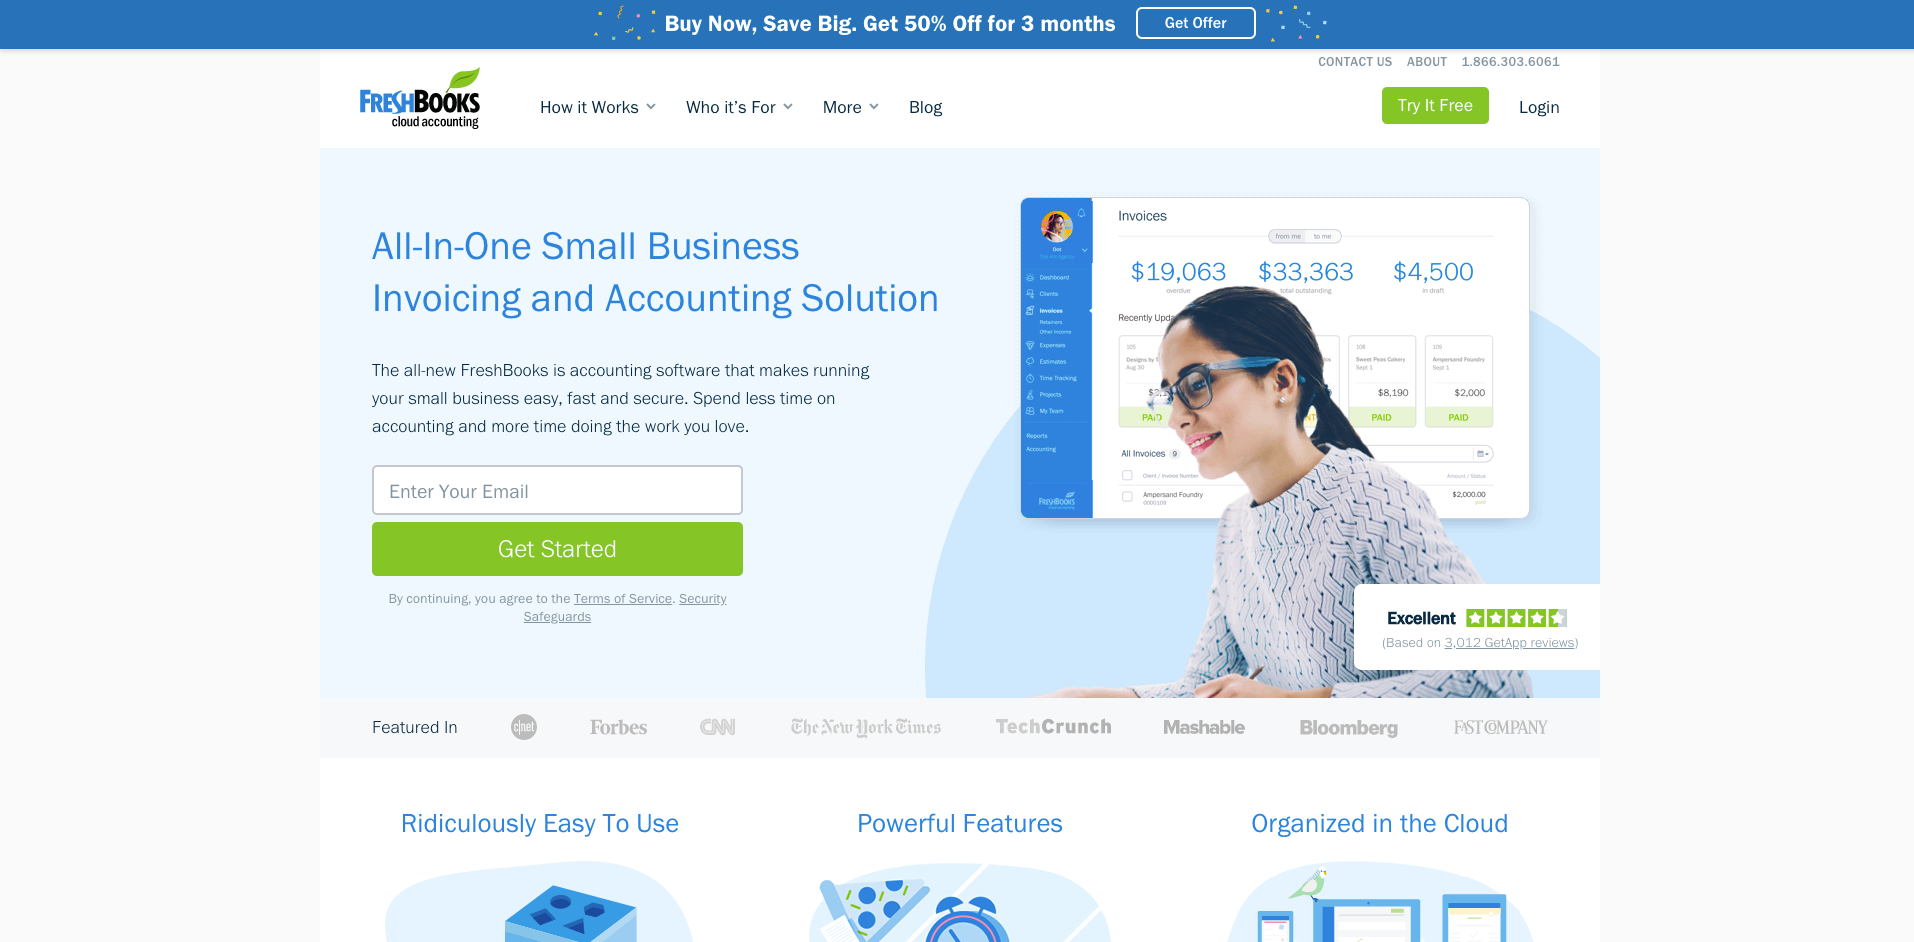 freshbooks website homepage screenshot